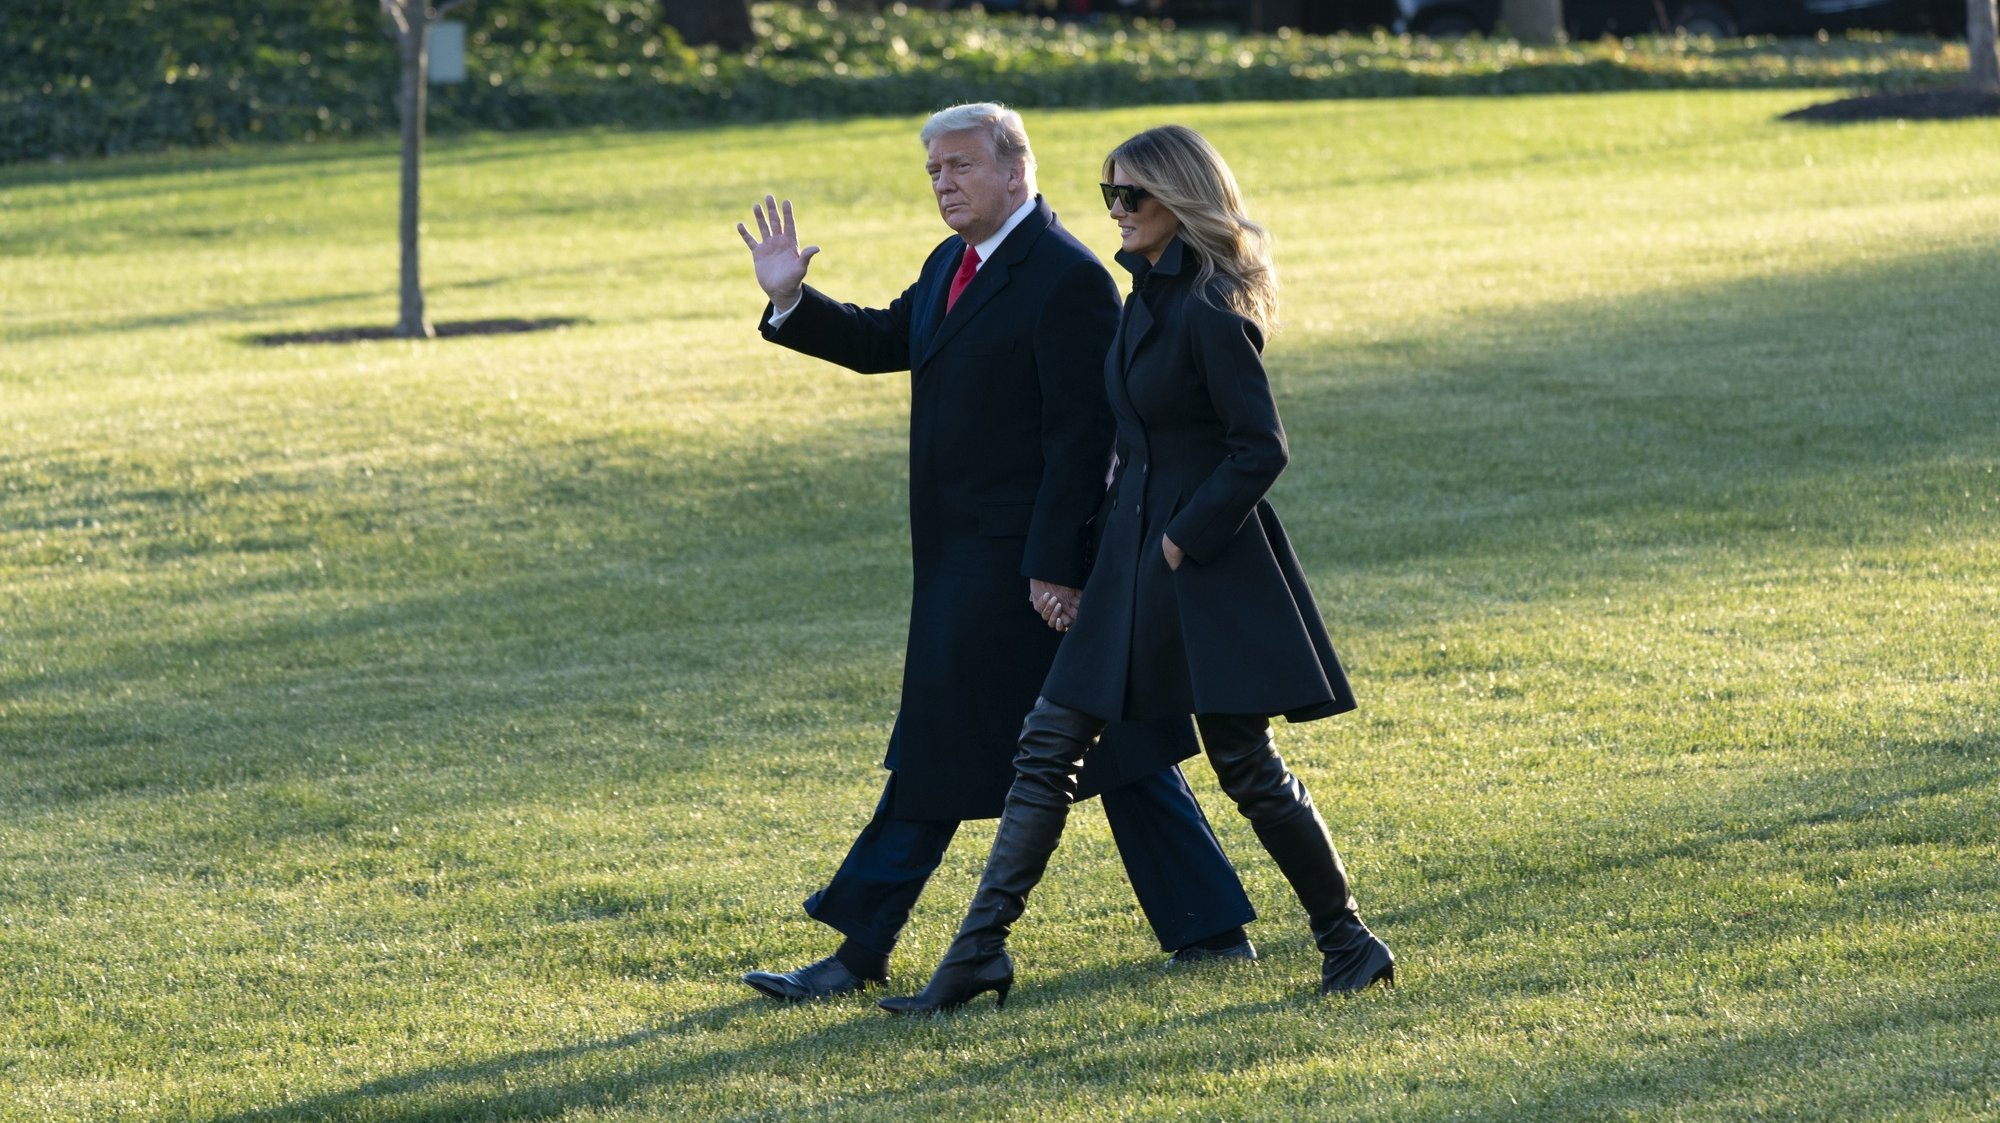 epa08901875 US President Donald J. Trump and First lady Melania Trump (R) depart the White House, in Washington, DC, USA, 23 December 2020, headed out to Mar-a-Lago in Palm Beach, Florida.  EPA/Chris Kleponis / POOL